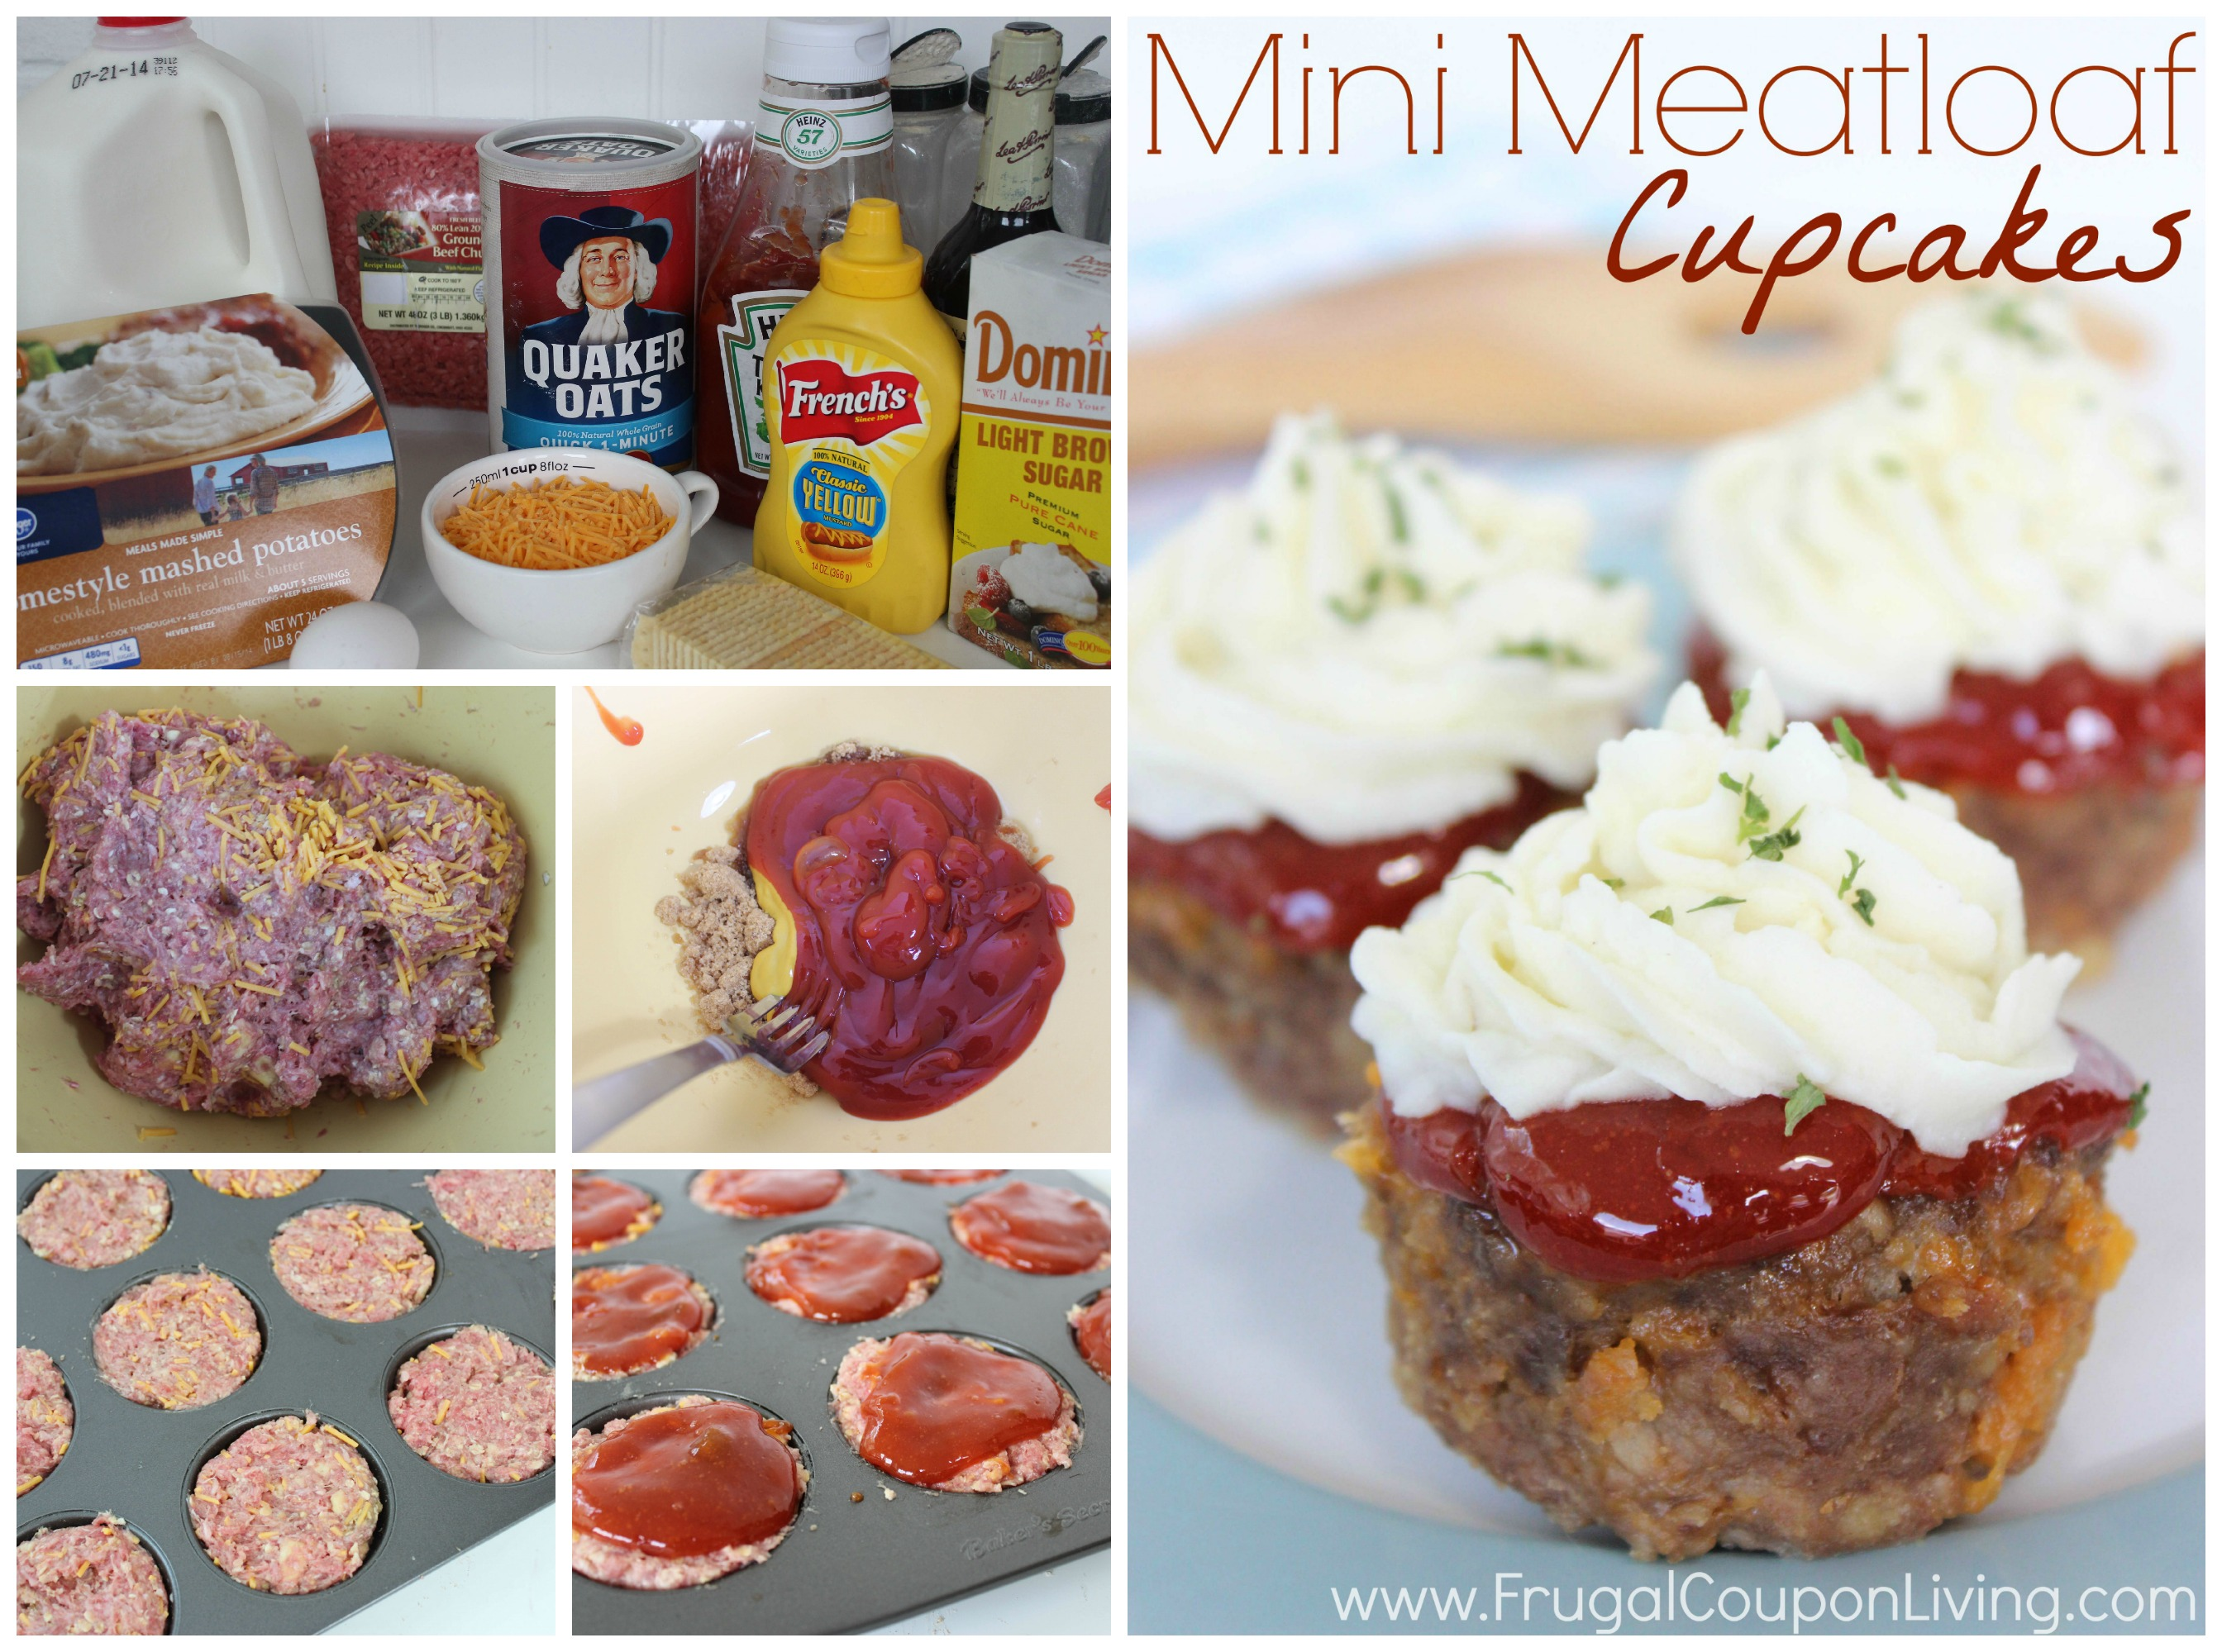 mini-meatloaf-cupcakes-Collage-frugal-coupon-living